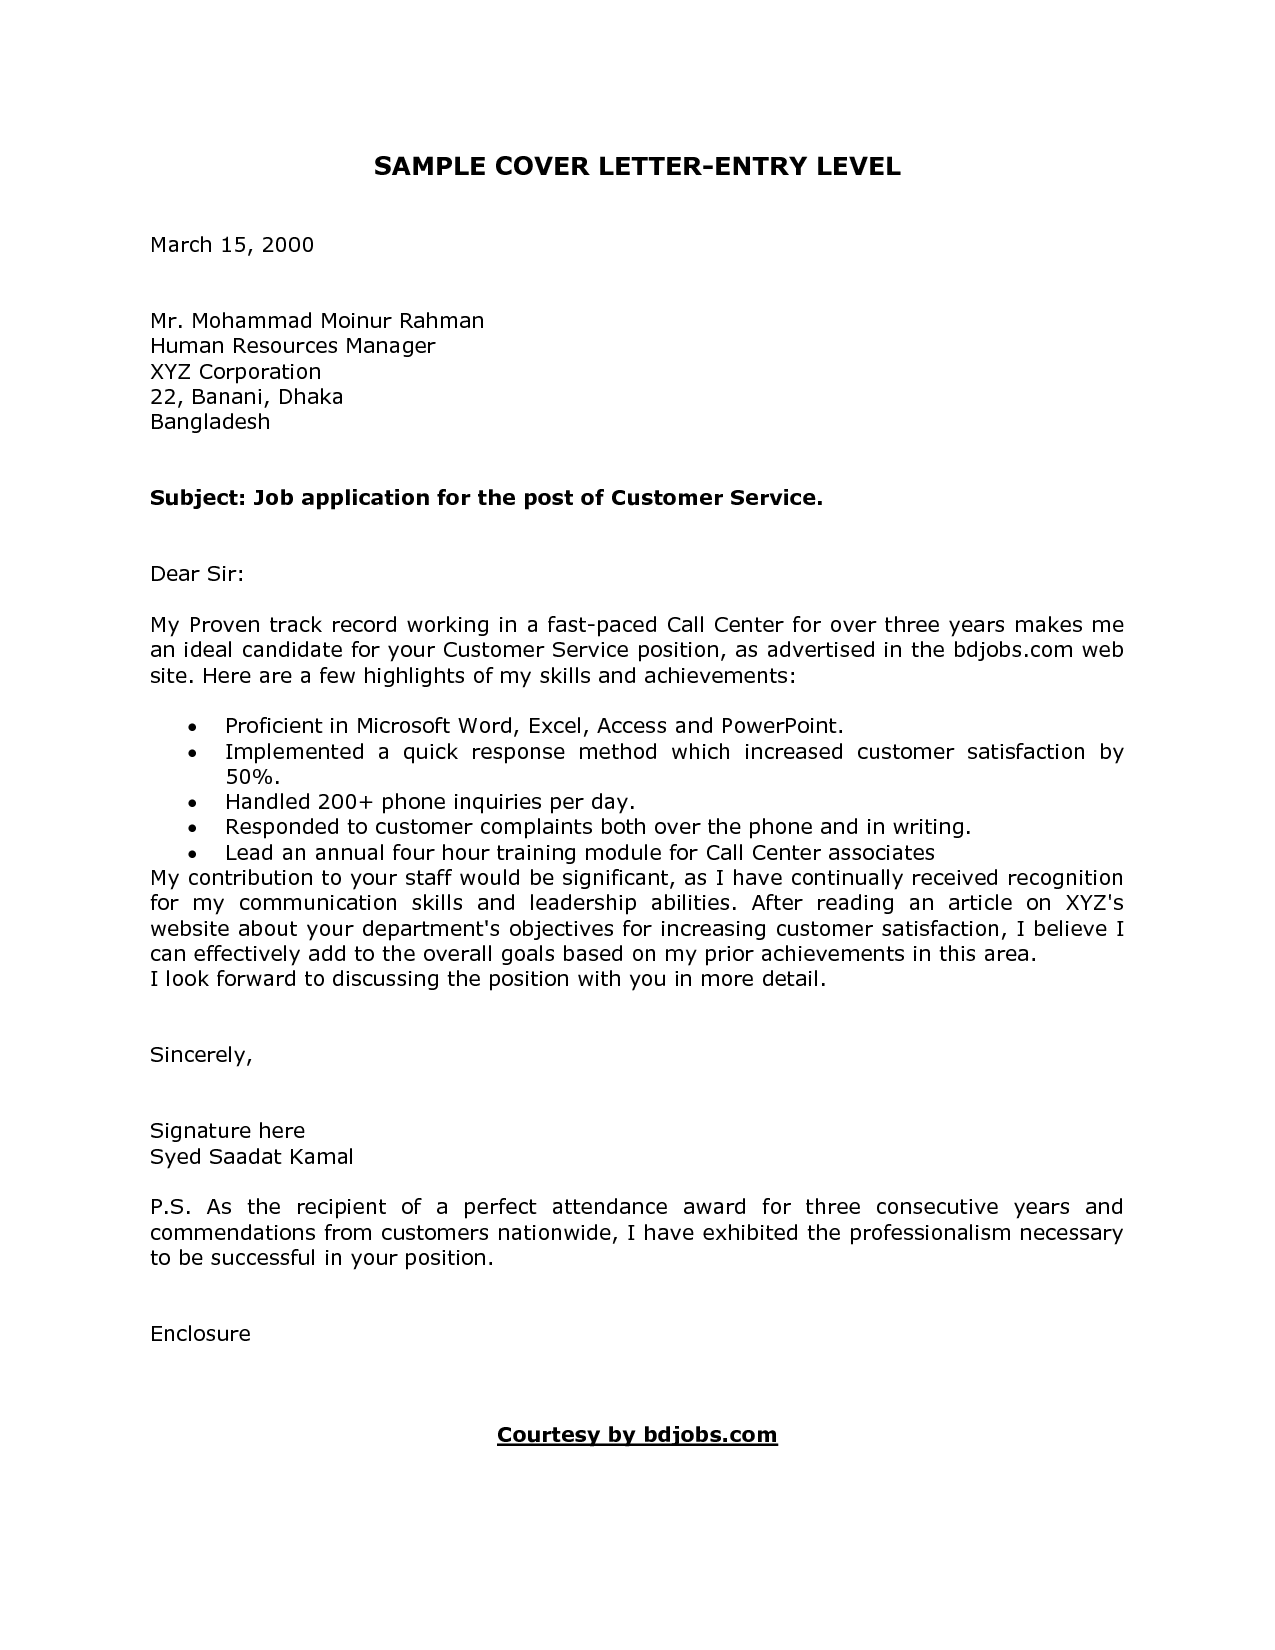 Attractive How To Write A Good Cover Letter Example. How To Write An Amazing Cover  Letter Cover Letters Pinterest . How To Write A Good Cover Letter Example Inside How To Write A Great Cover Letter